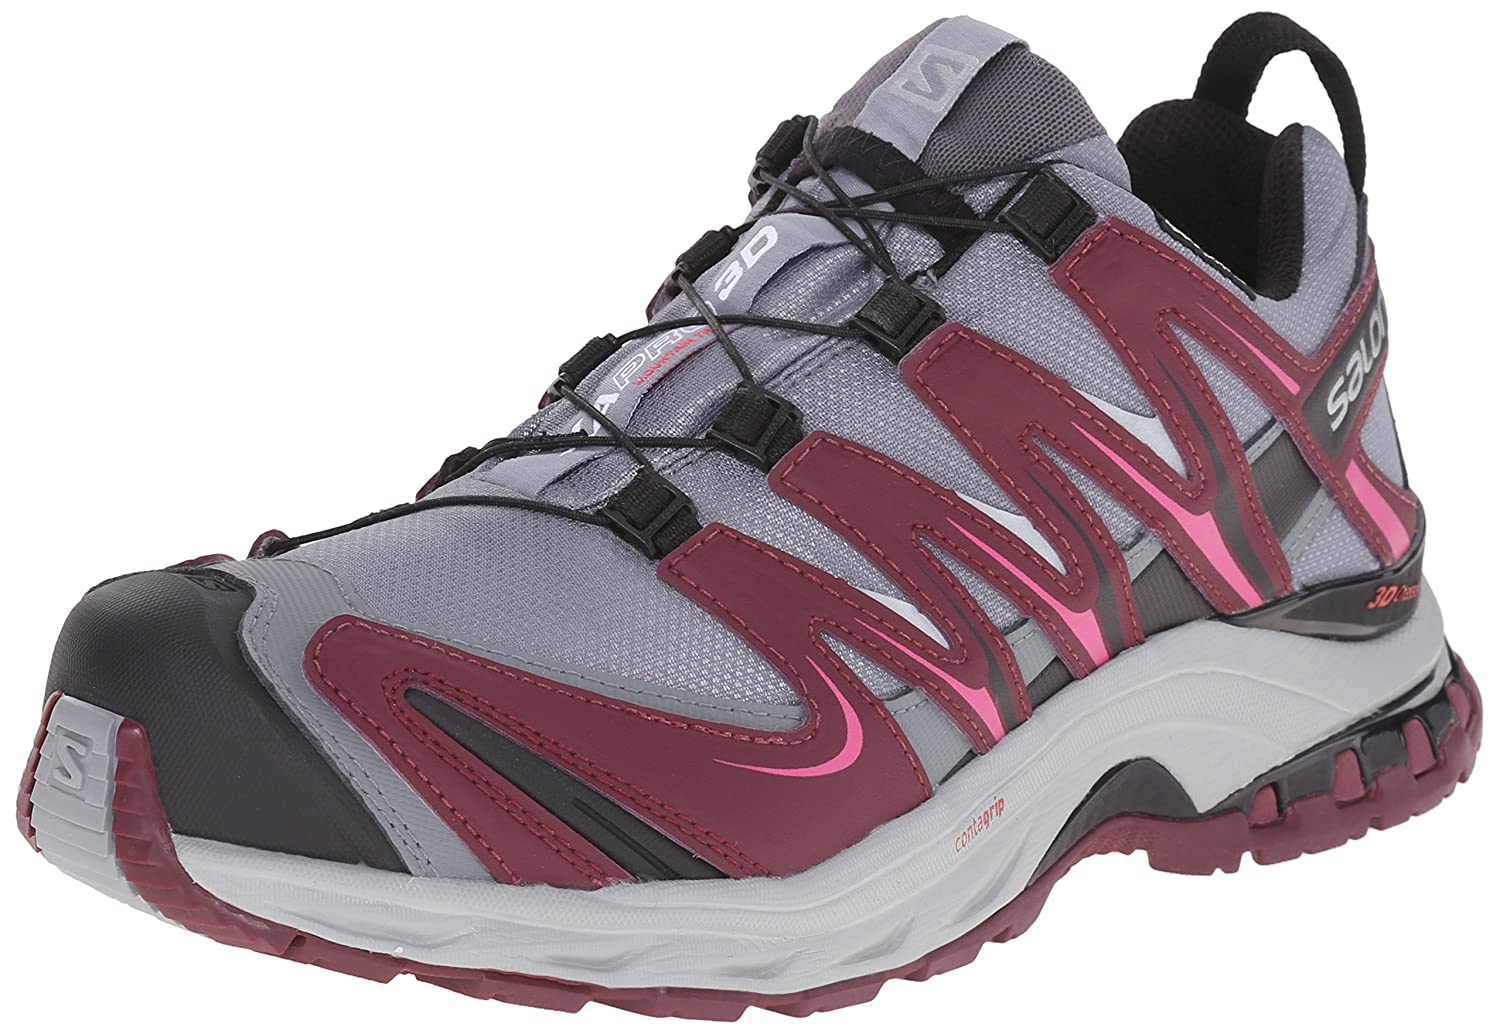 Salomon Women's XA Pro 3D CS Waterproof W Trail Running Shoe B00ZLN4IWW 7.5 B(M) US|Pearl Grey/Bordeaux/Hot Pink